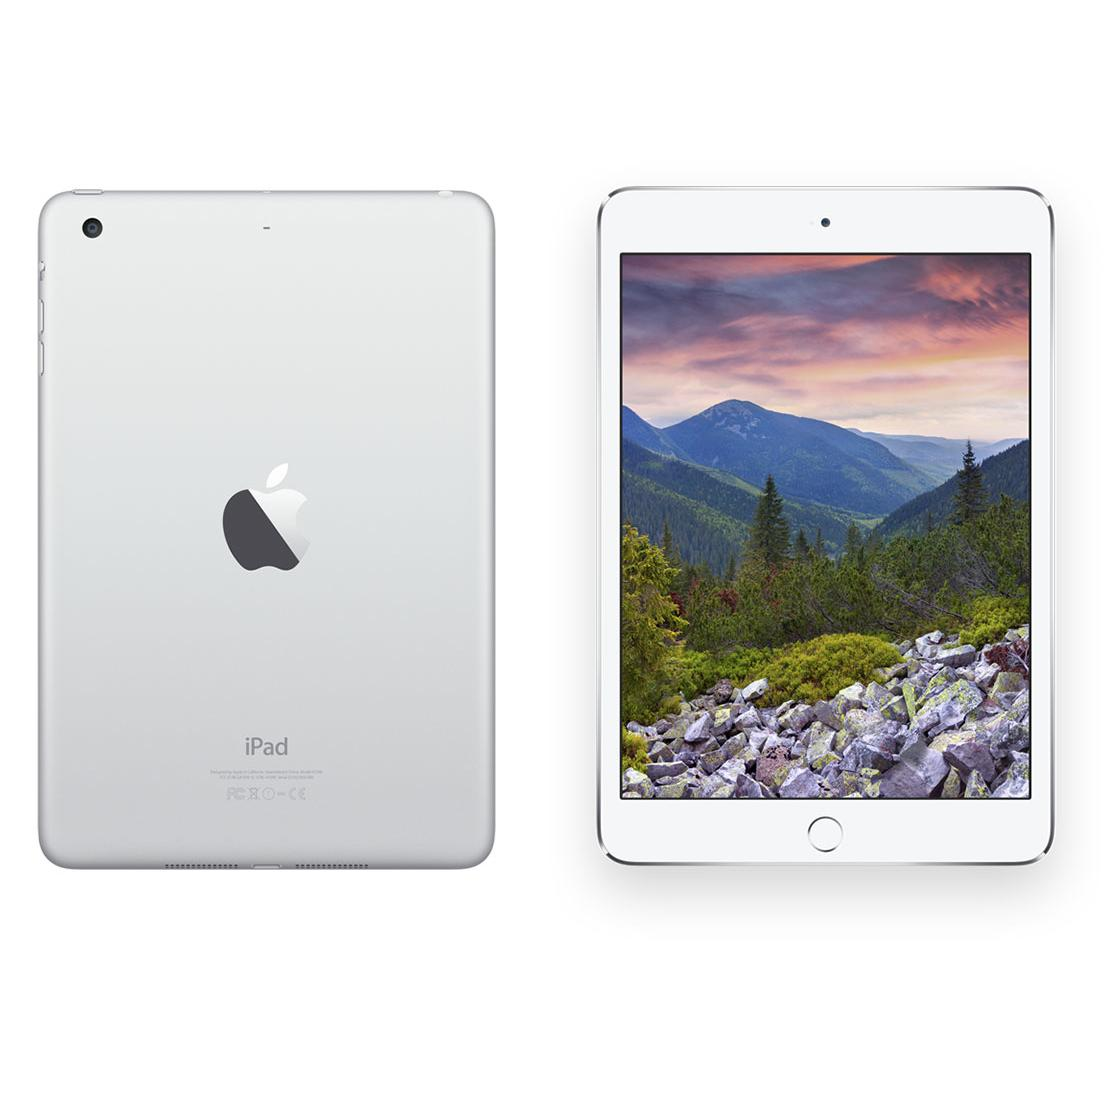 iPad mini 3 64 GB - Wifi + 4G - Plata - Libre